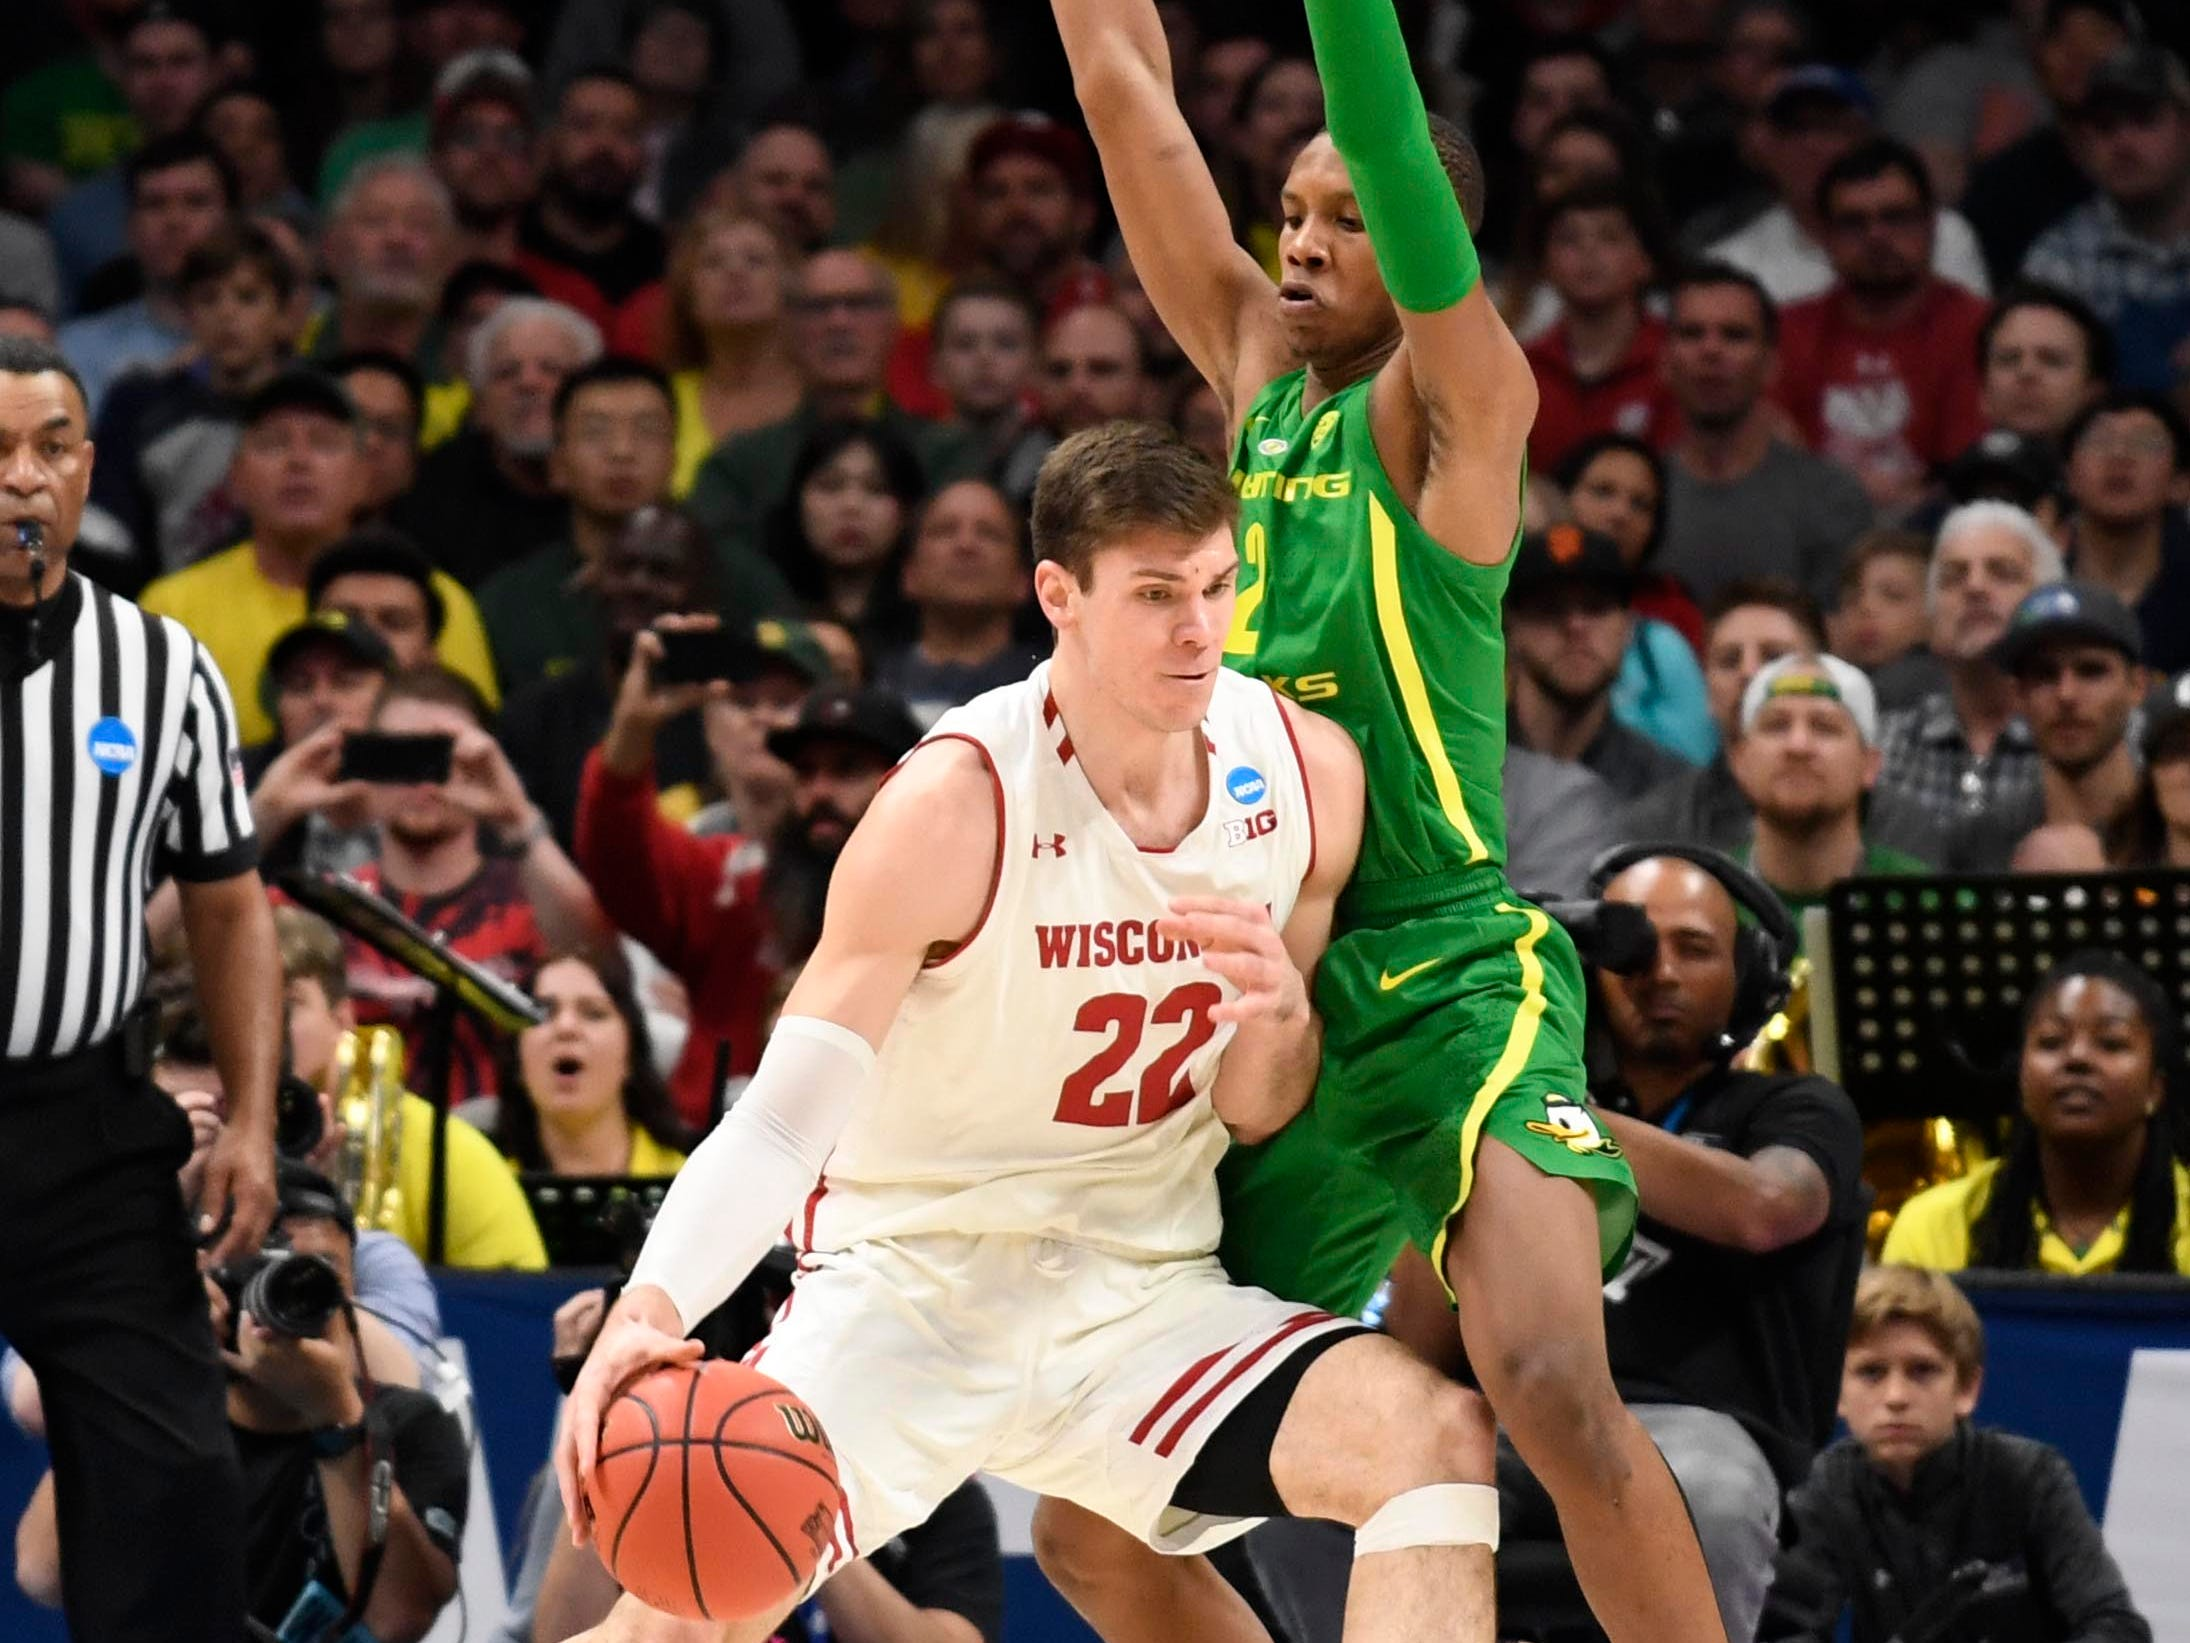 Mar 22, 2019; San Jose, CA, USA; Wisconsin Badgers forward Ethan Happ (22) drives around Oregon Ducks forward Louis King (2) during the first half in the first round of the 2019 NCAA Tournament at SAP Center. Mandatory Credit: Kelley L Cox-USA TODAY Sports